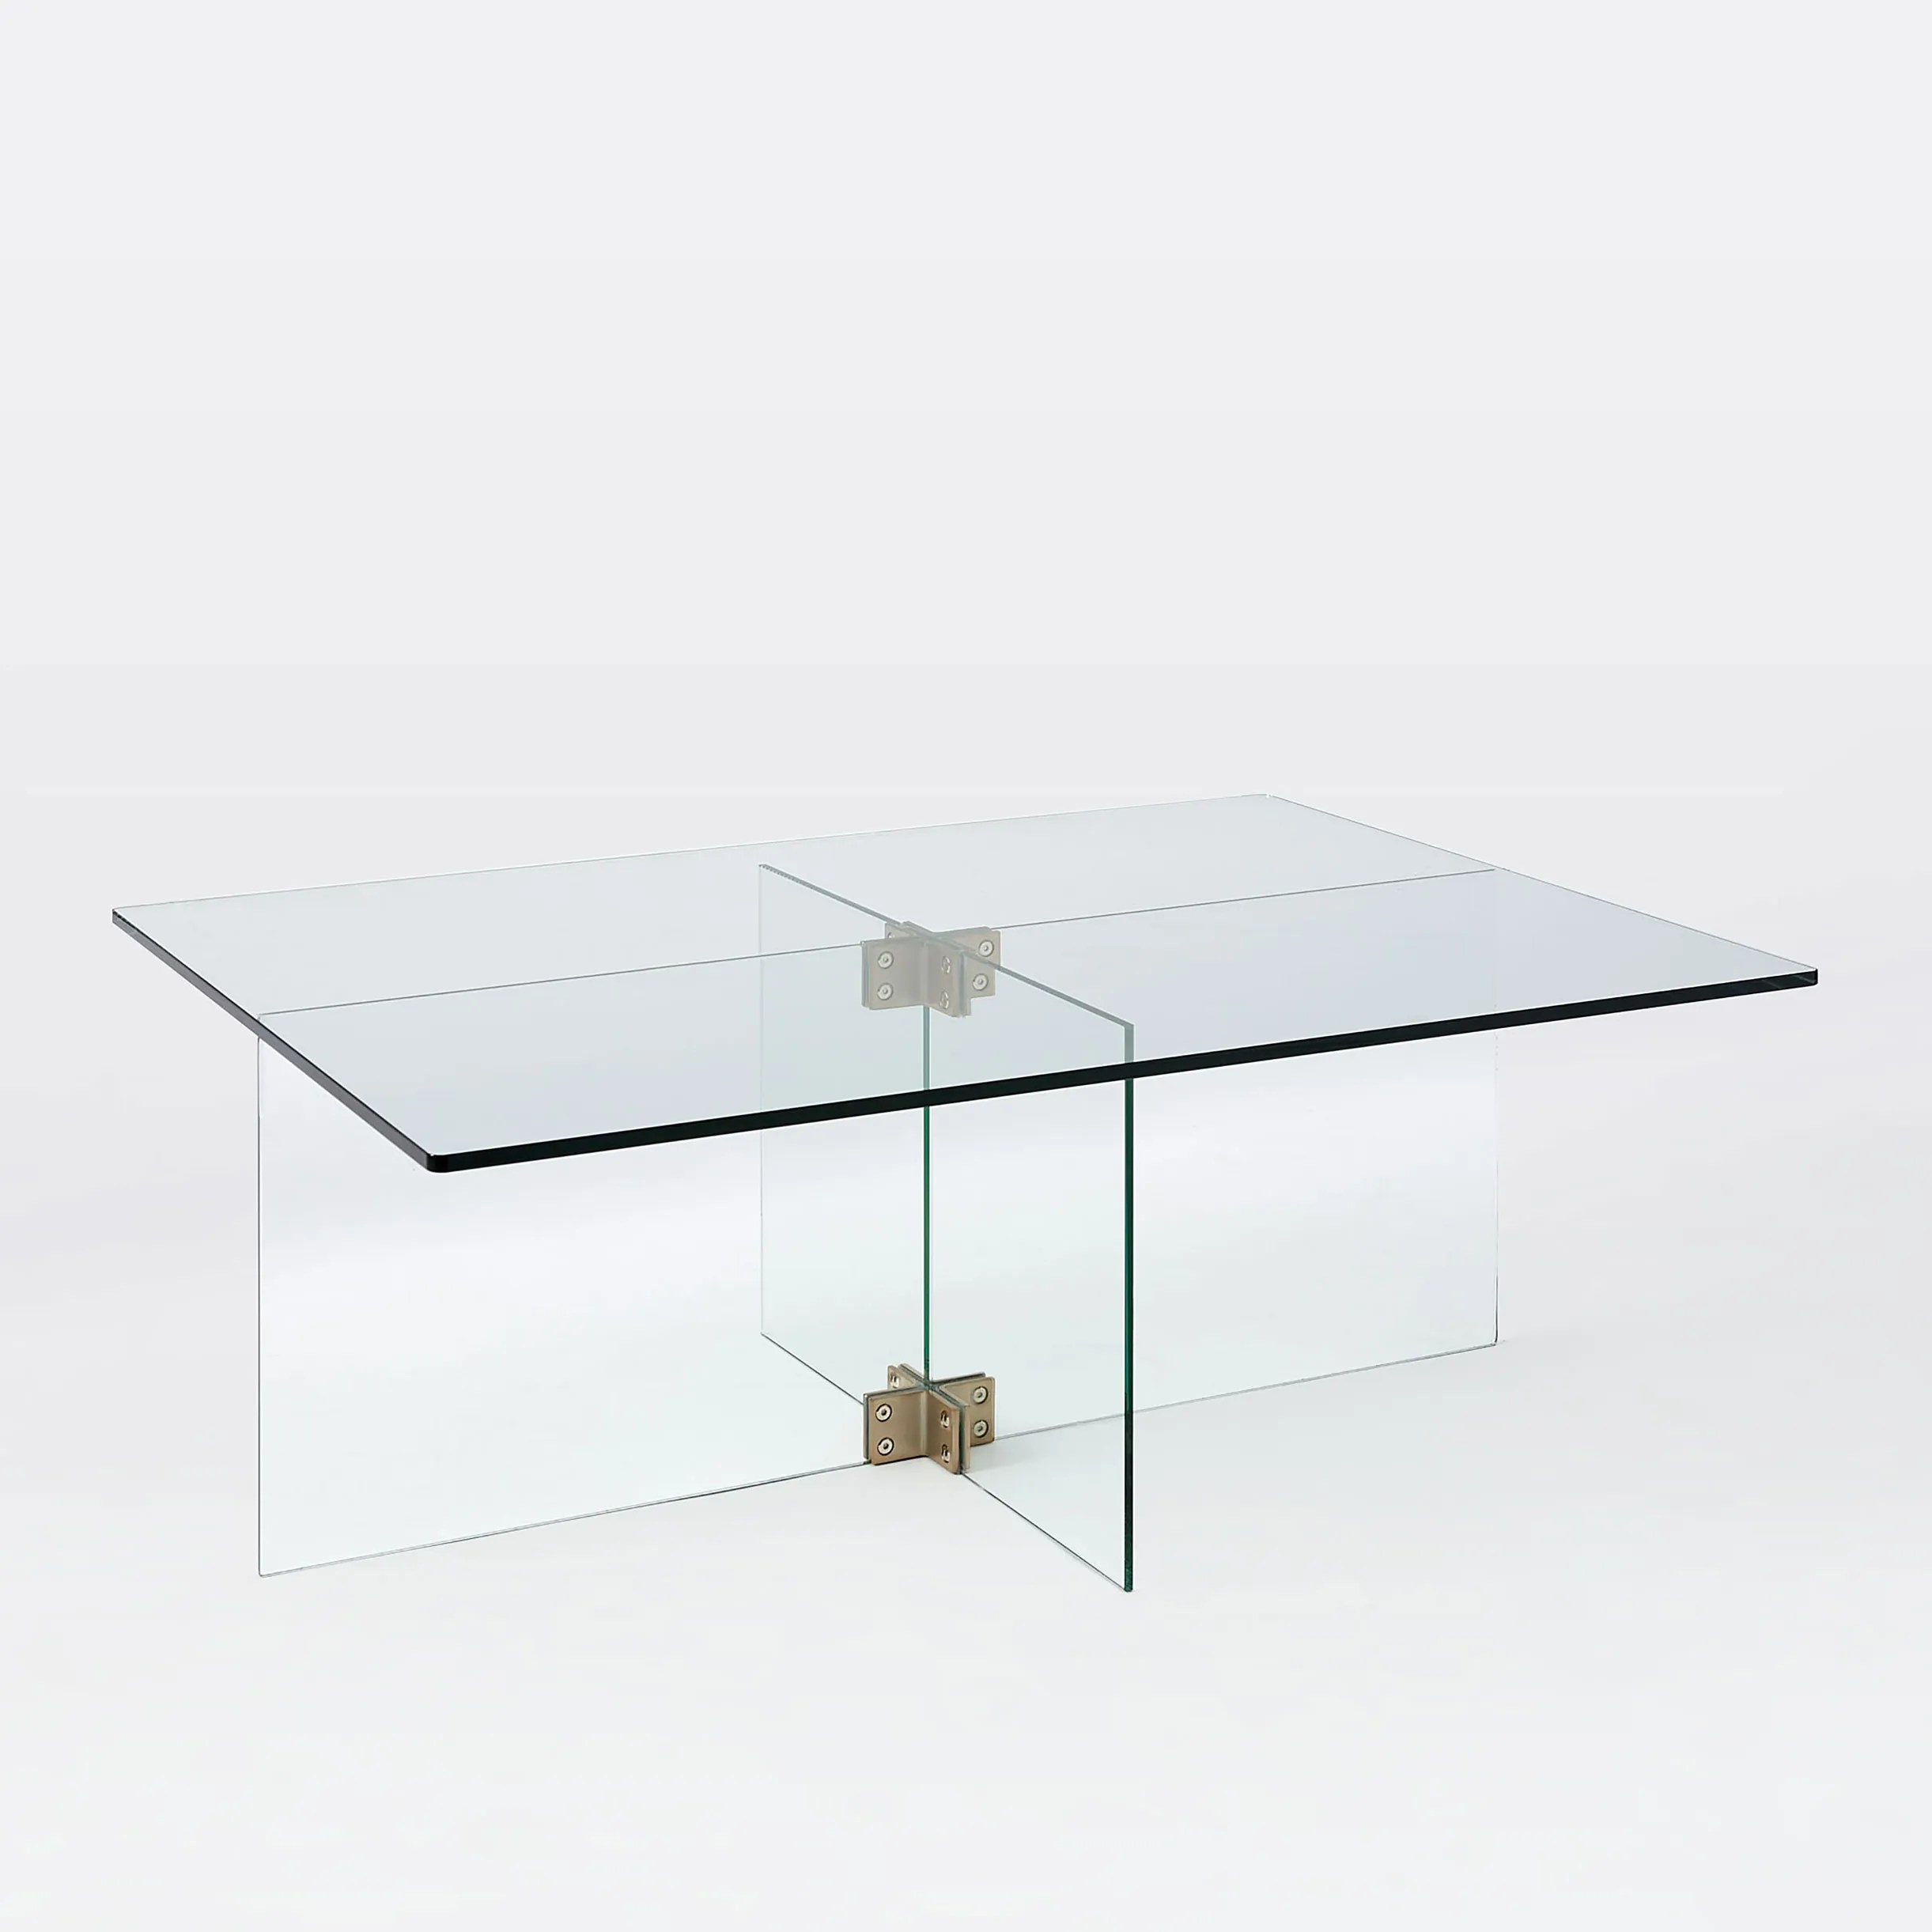 acrylic furniture is the answer to a